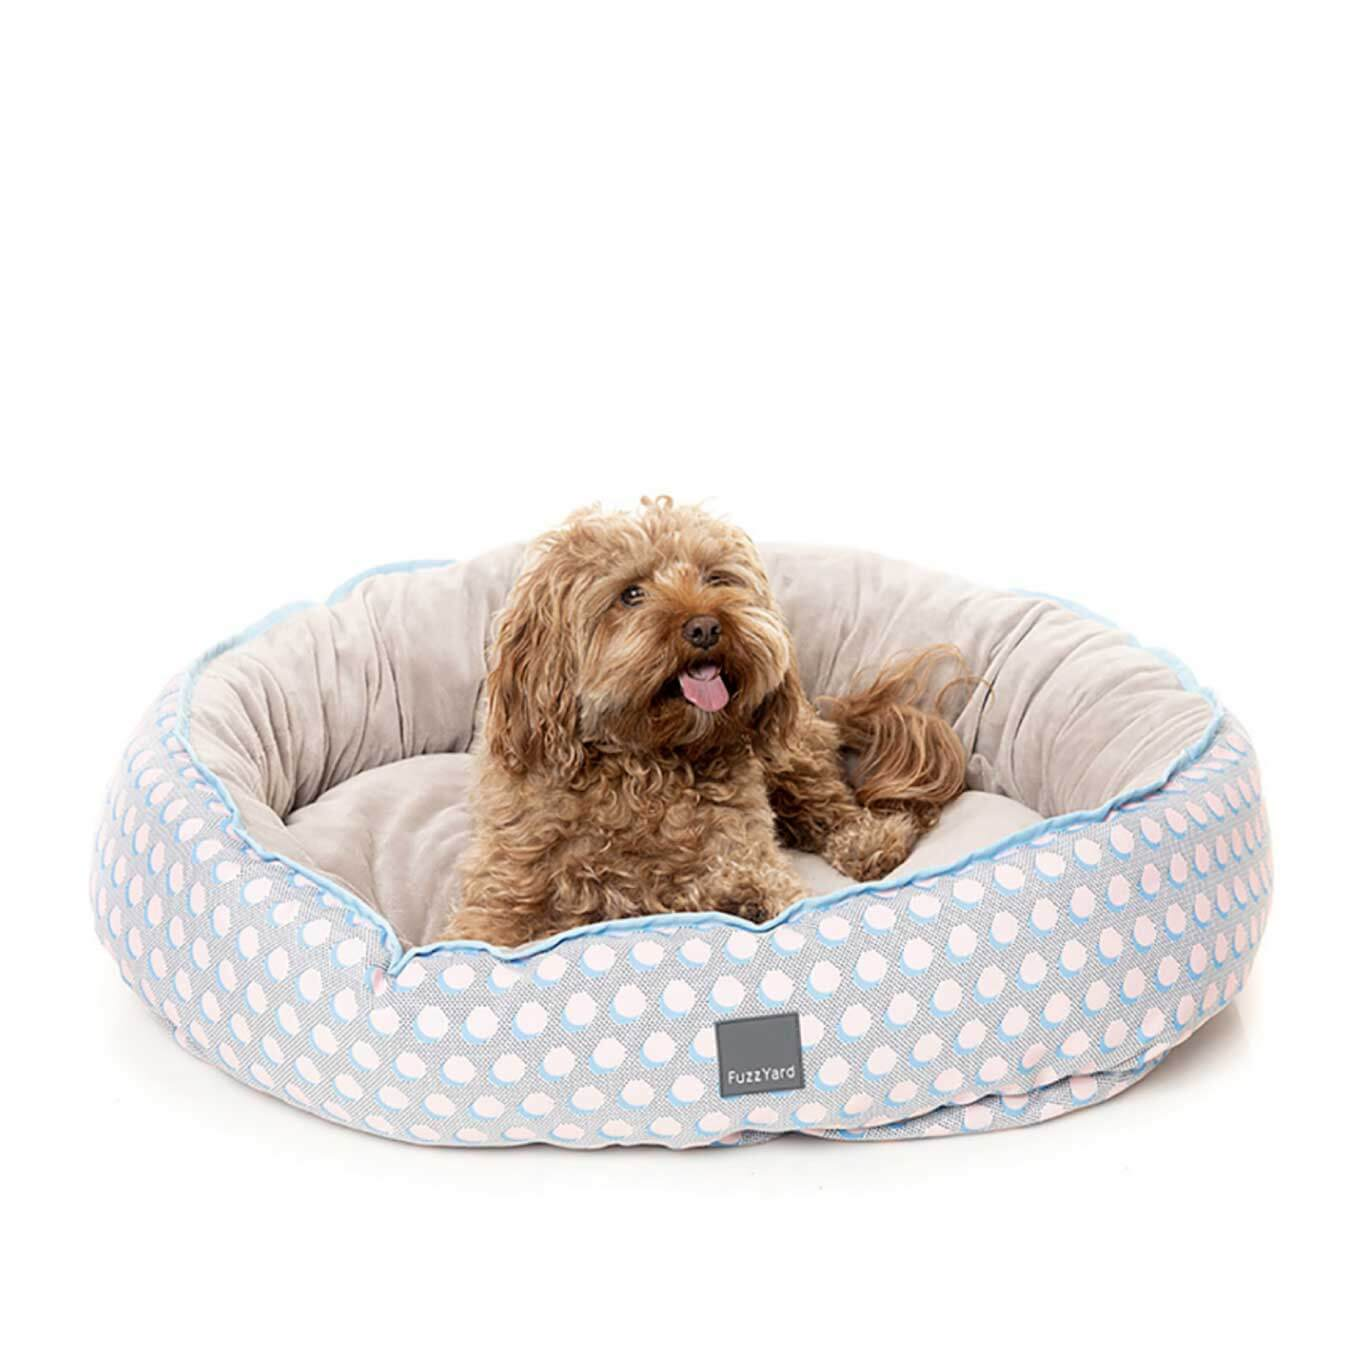 FuzzYard Dippin' Reversible Pet Bed - Beds, Dogs, FuzzYard - Vanillapup - Online Pet Shop